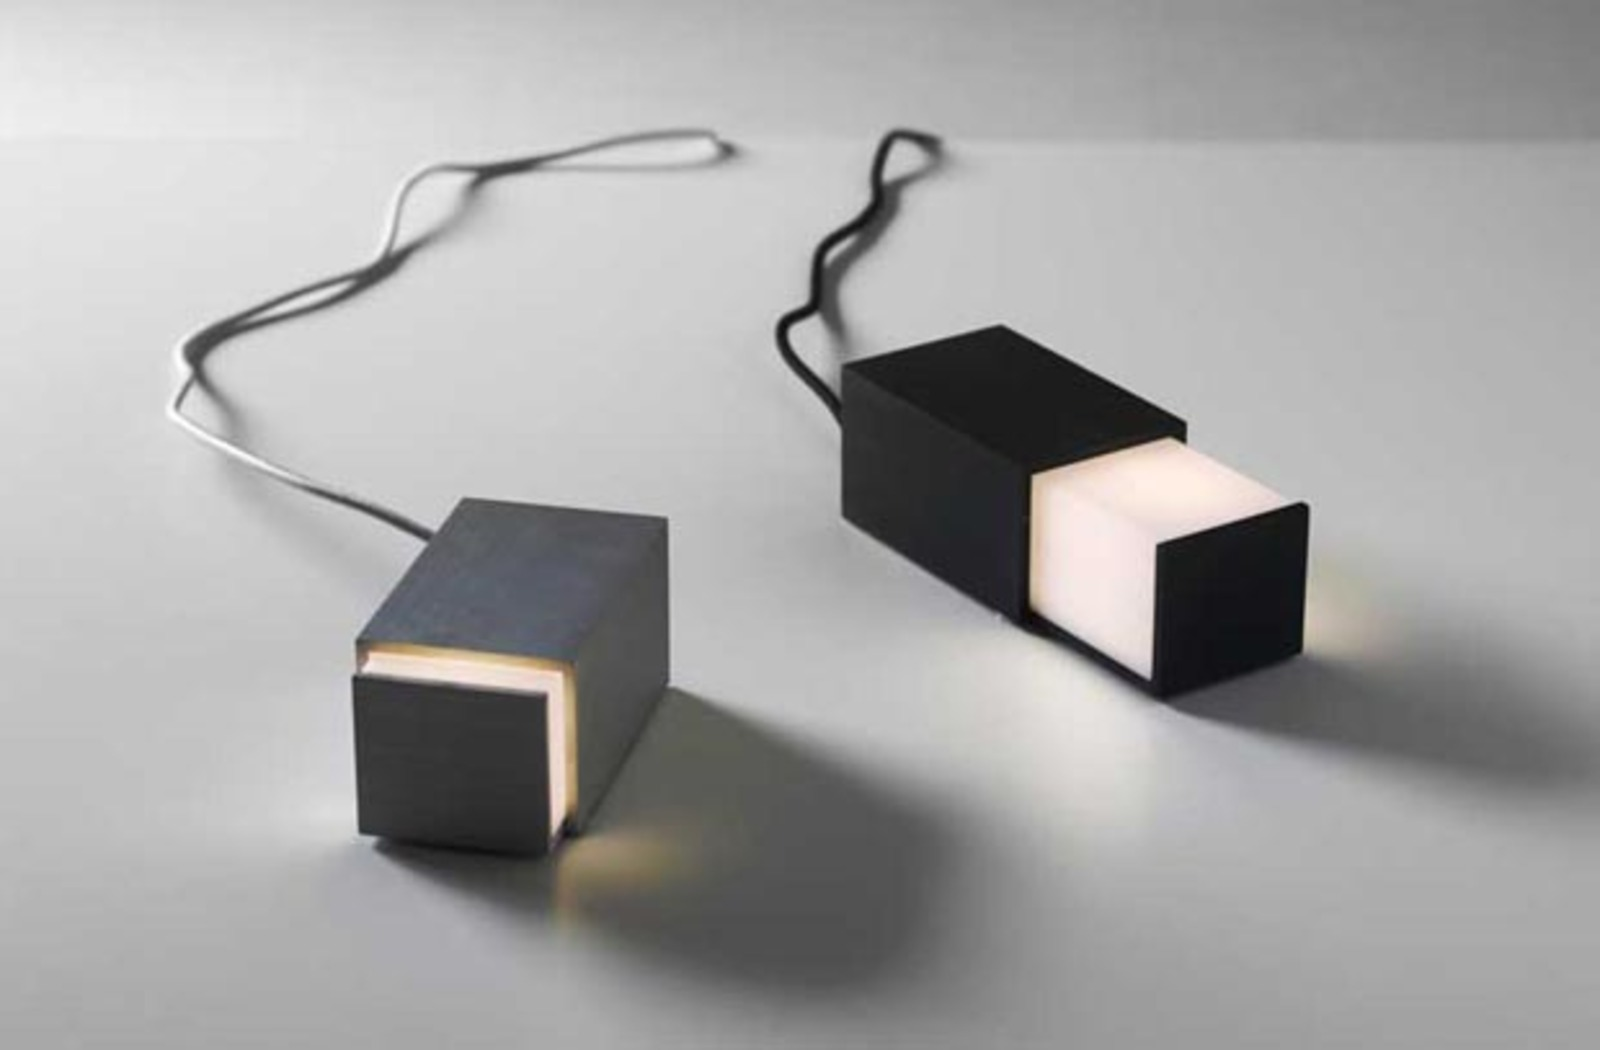 80+ Design House Stockholm Lighting - Cord Lamp By Design House ...